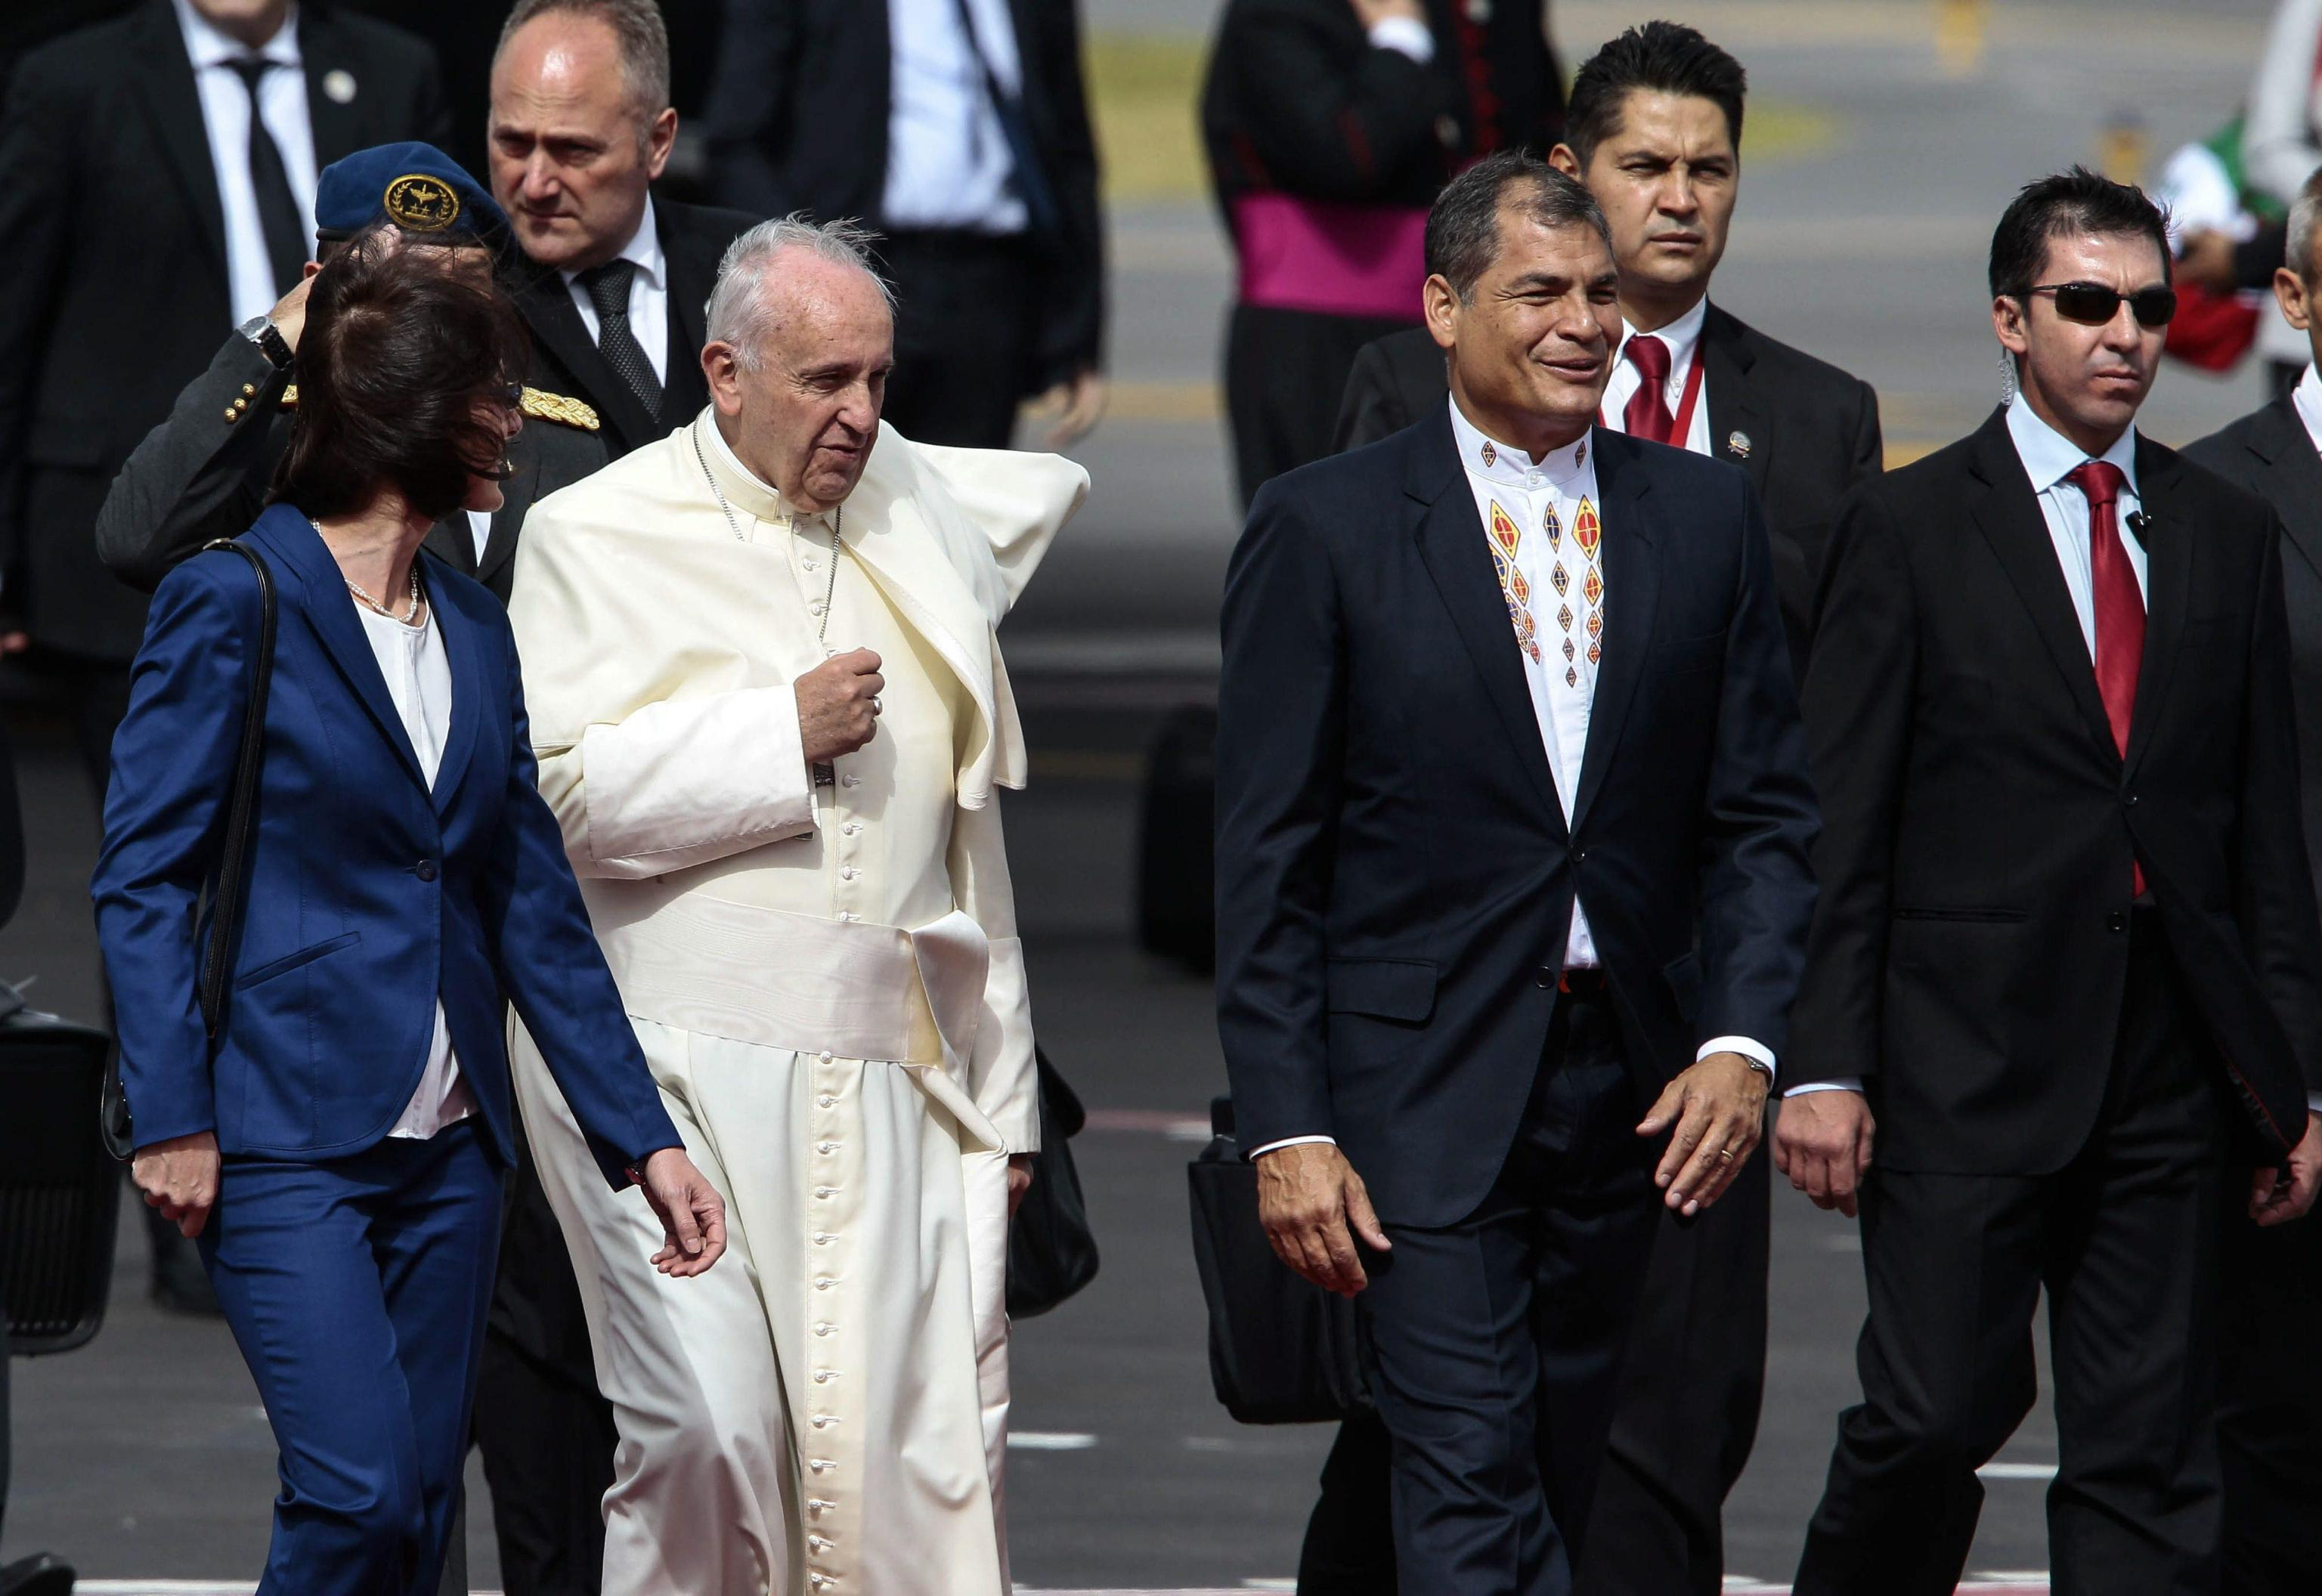 Pope Francis next to Ecuador's President Rafael Correa at his arrival at the International Airport of Quito